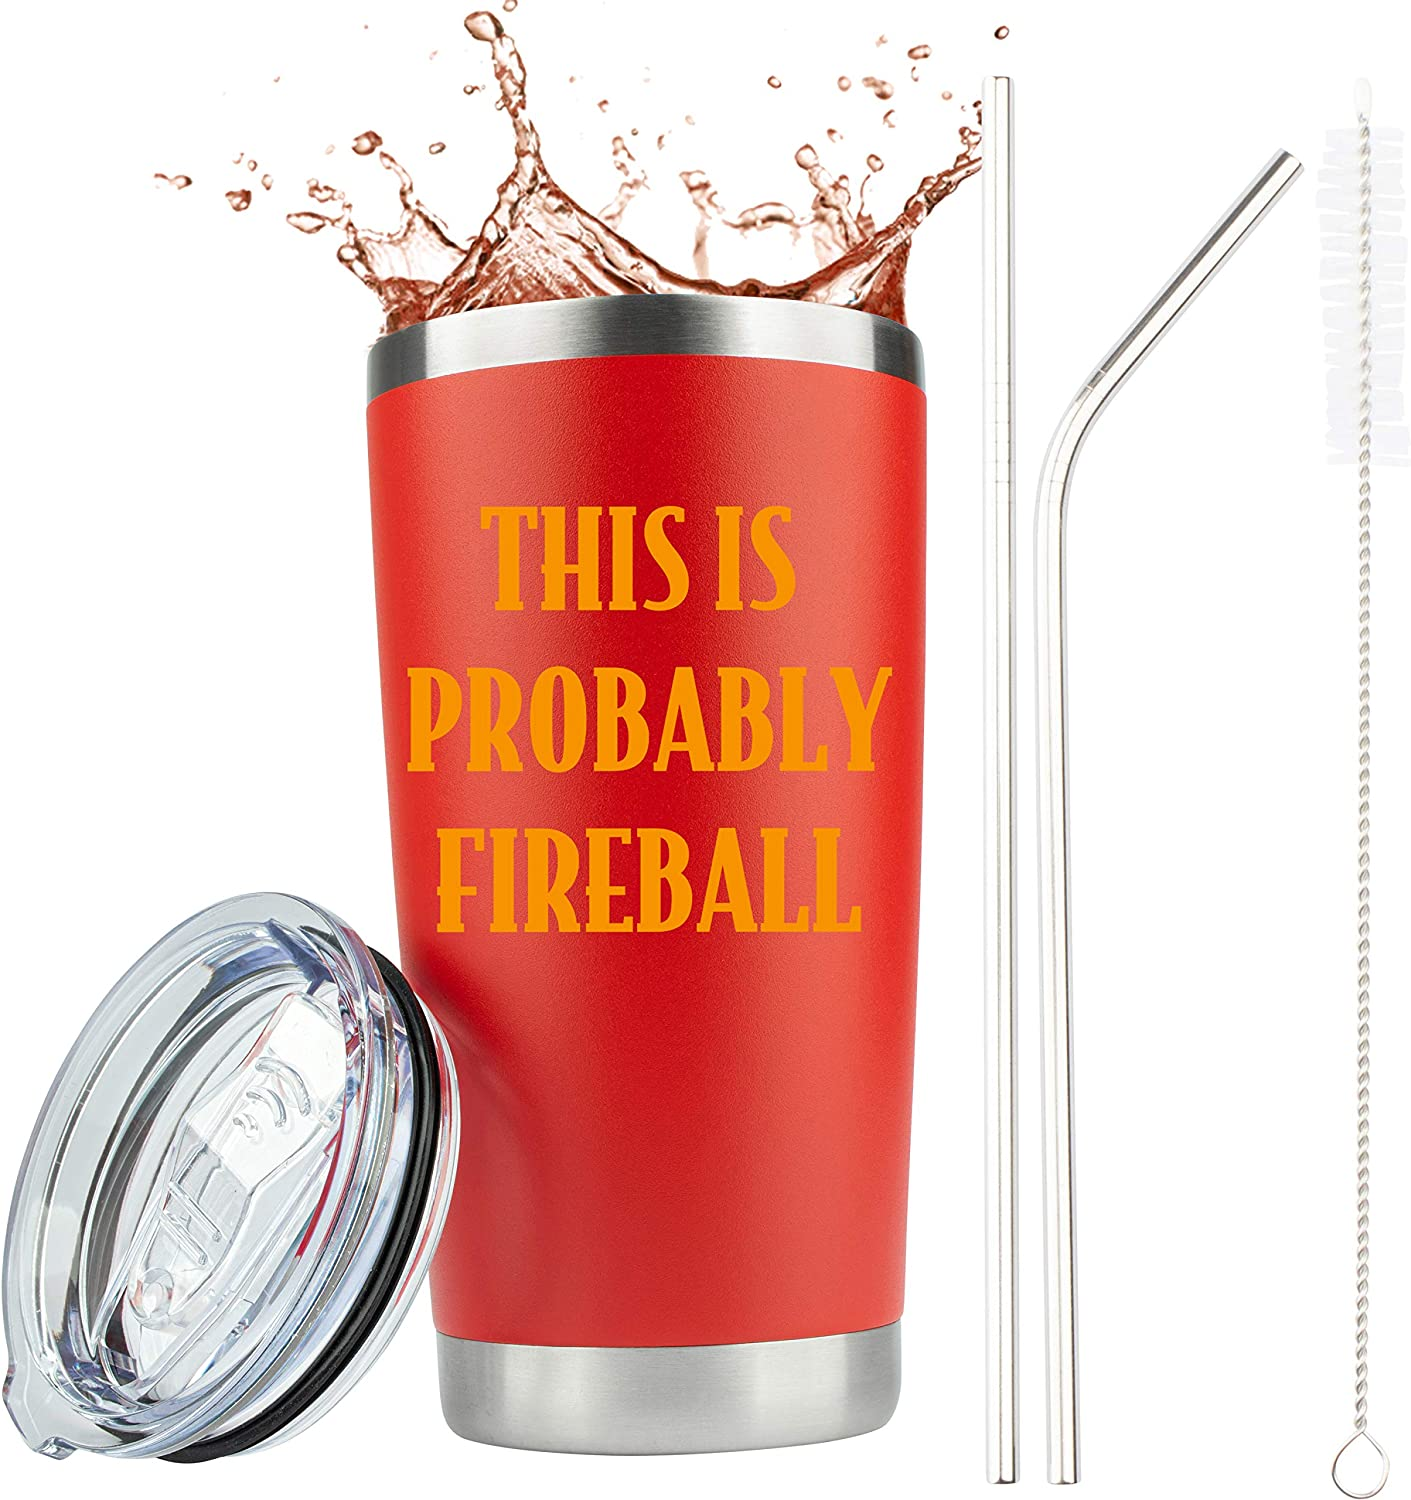 Fireball Whiskey Gifts - This Ci is Manufacturer direct delivery Probably Ounce 20 Washington Mall